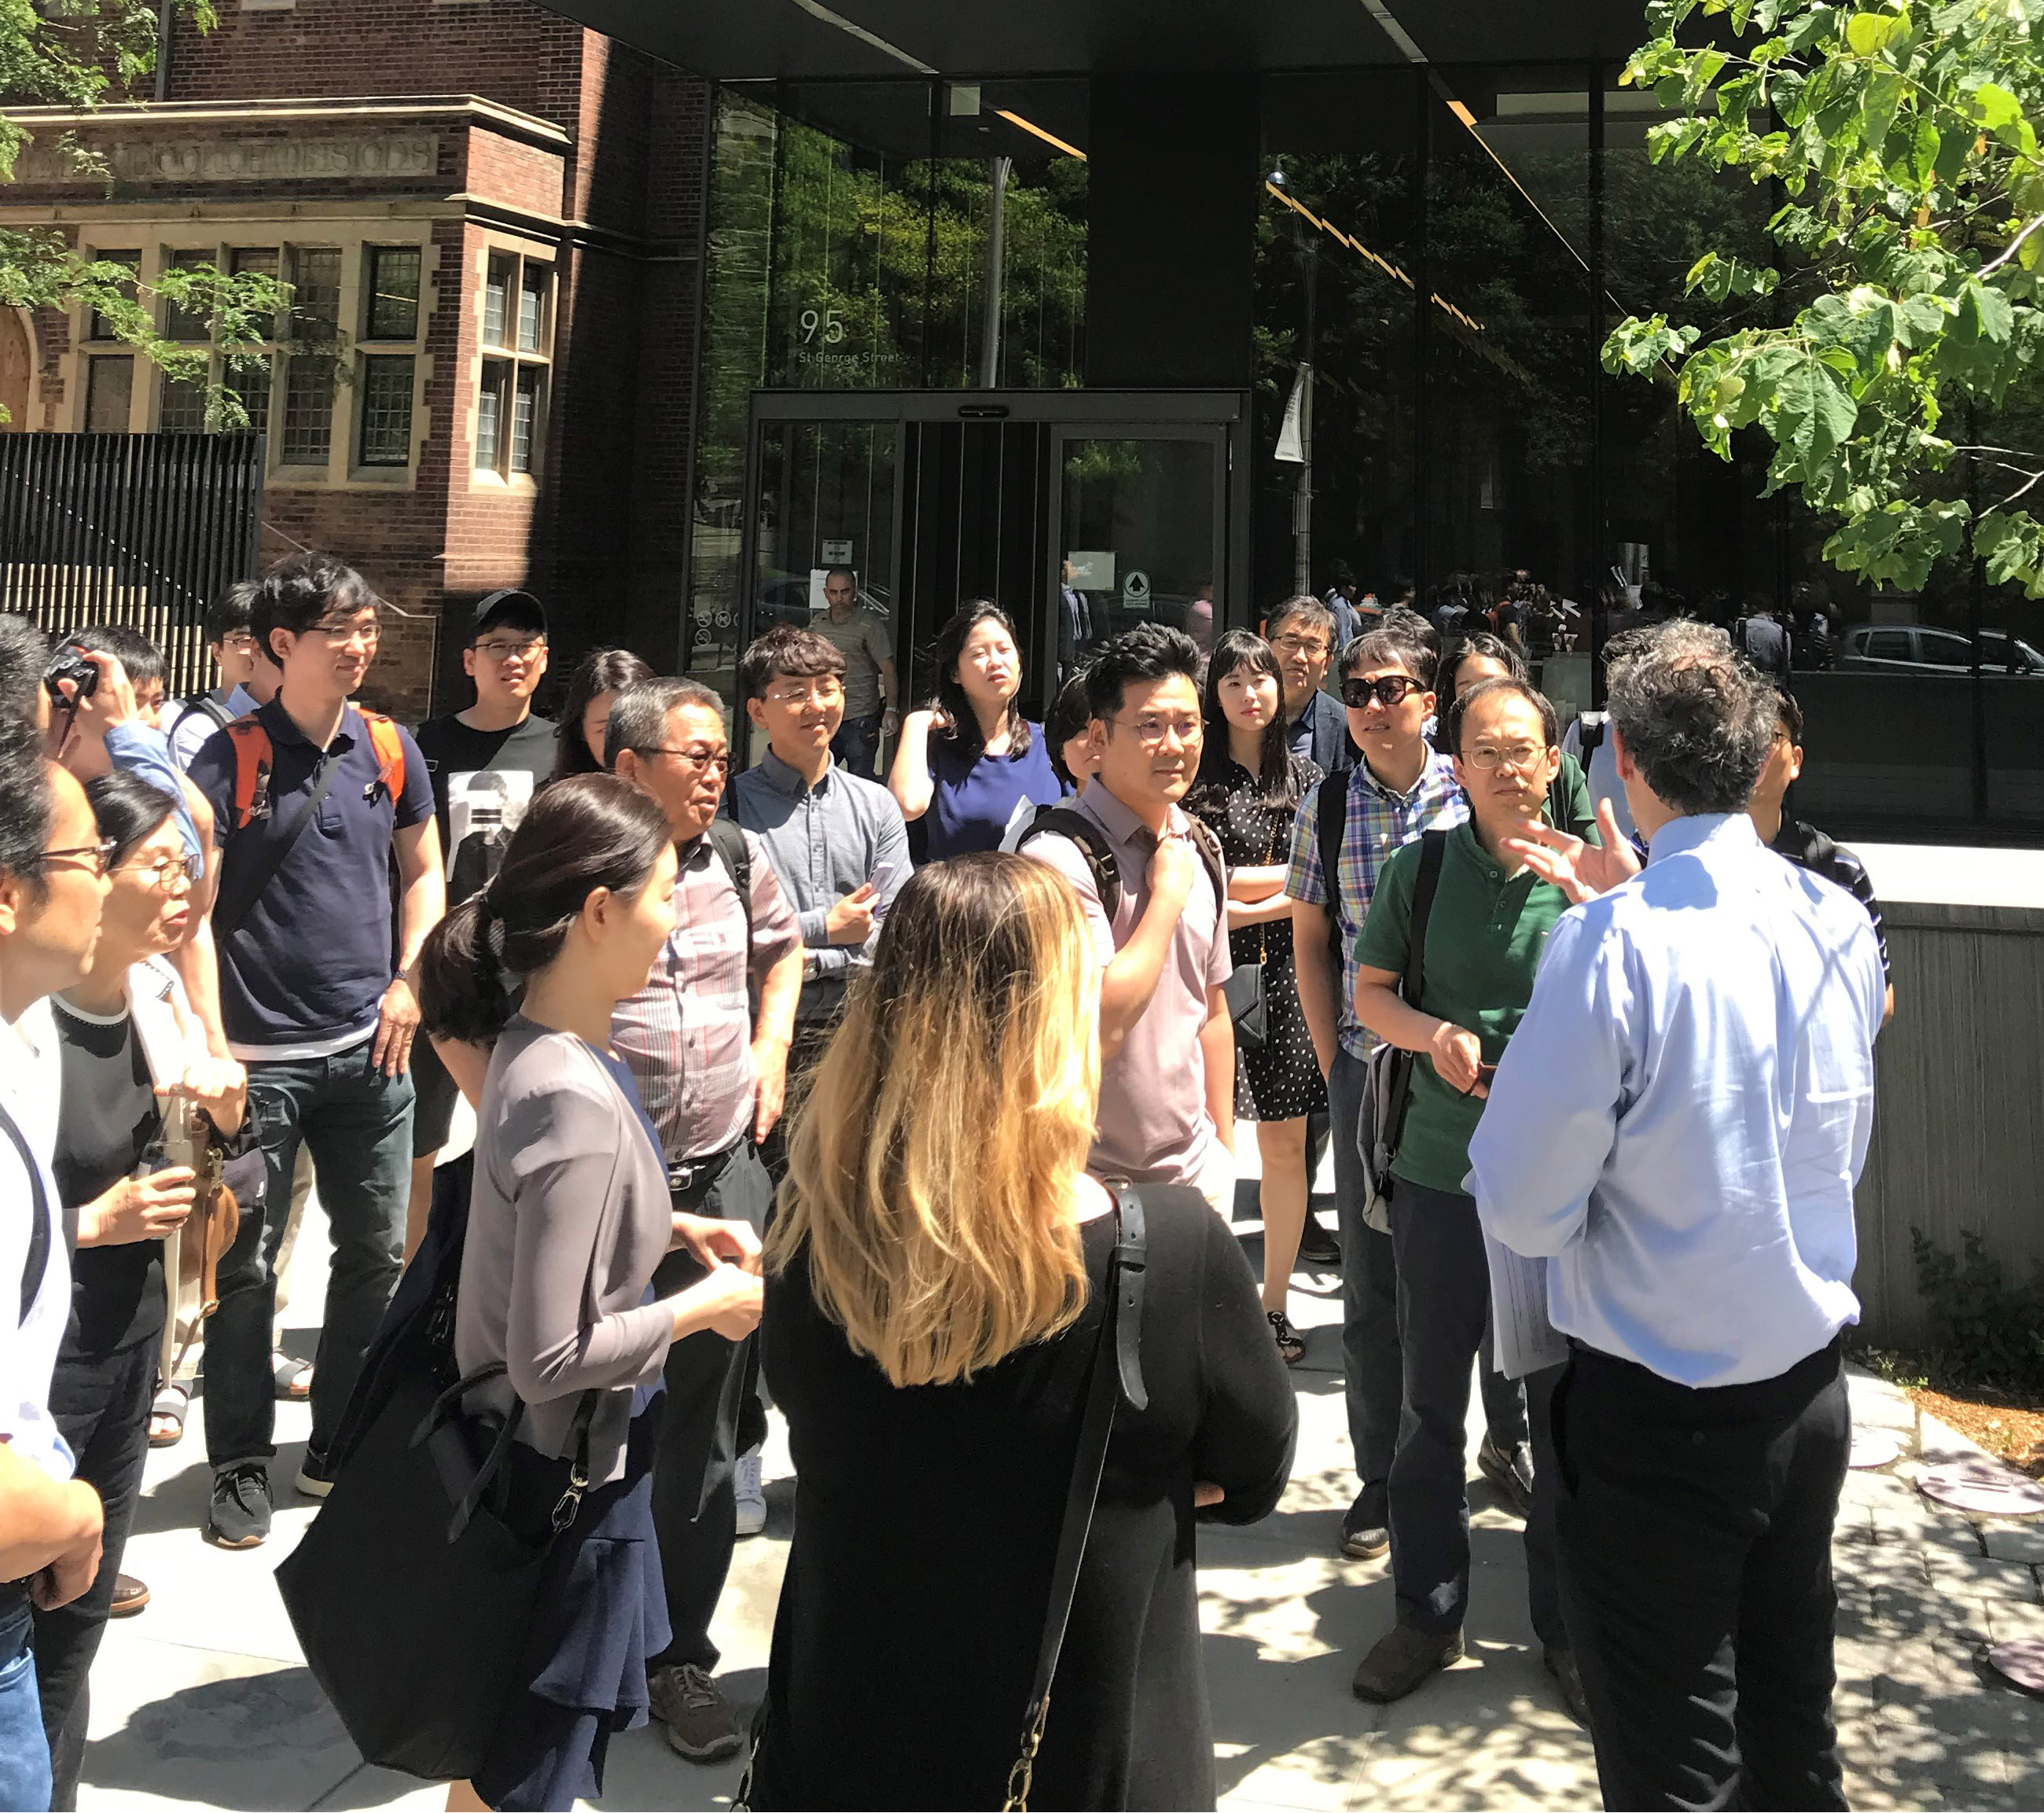 Rafael Gomez speaks to a group in front of the Rotman building